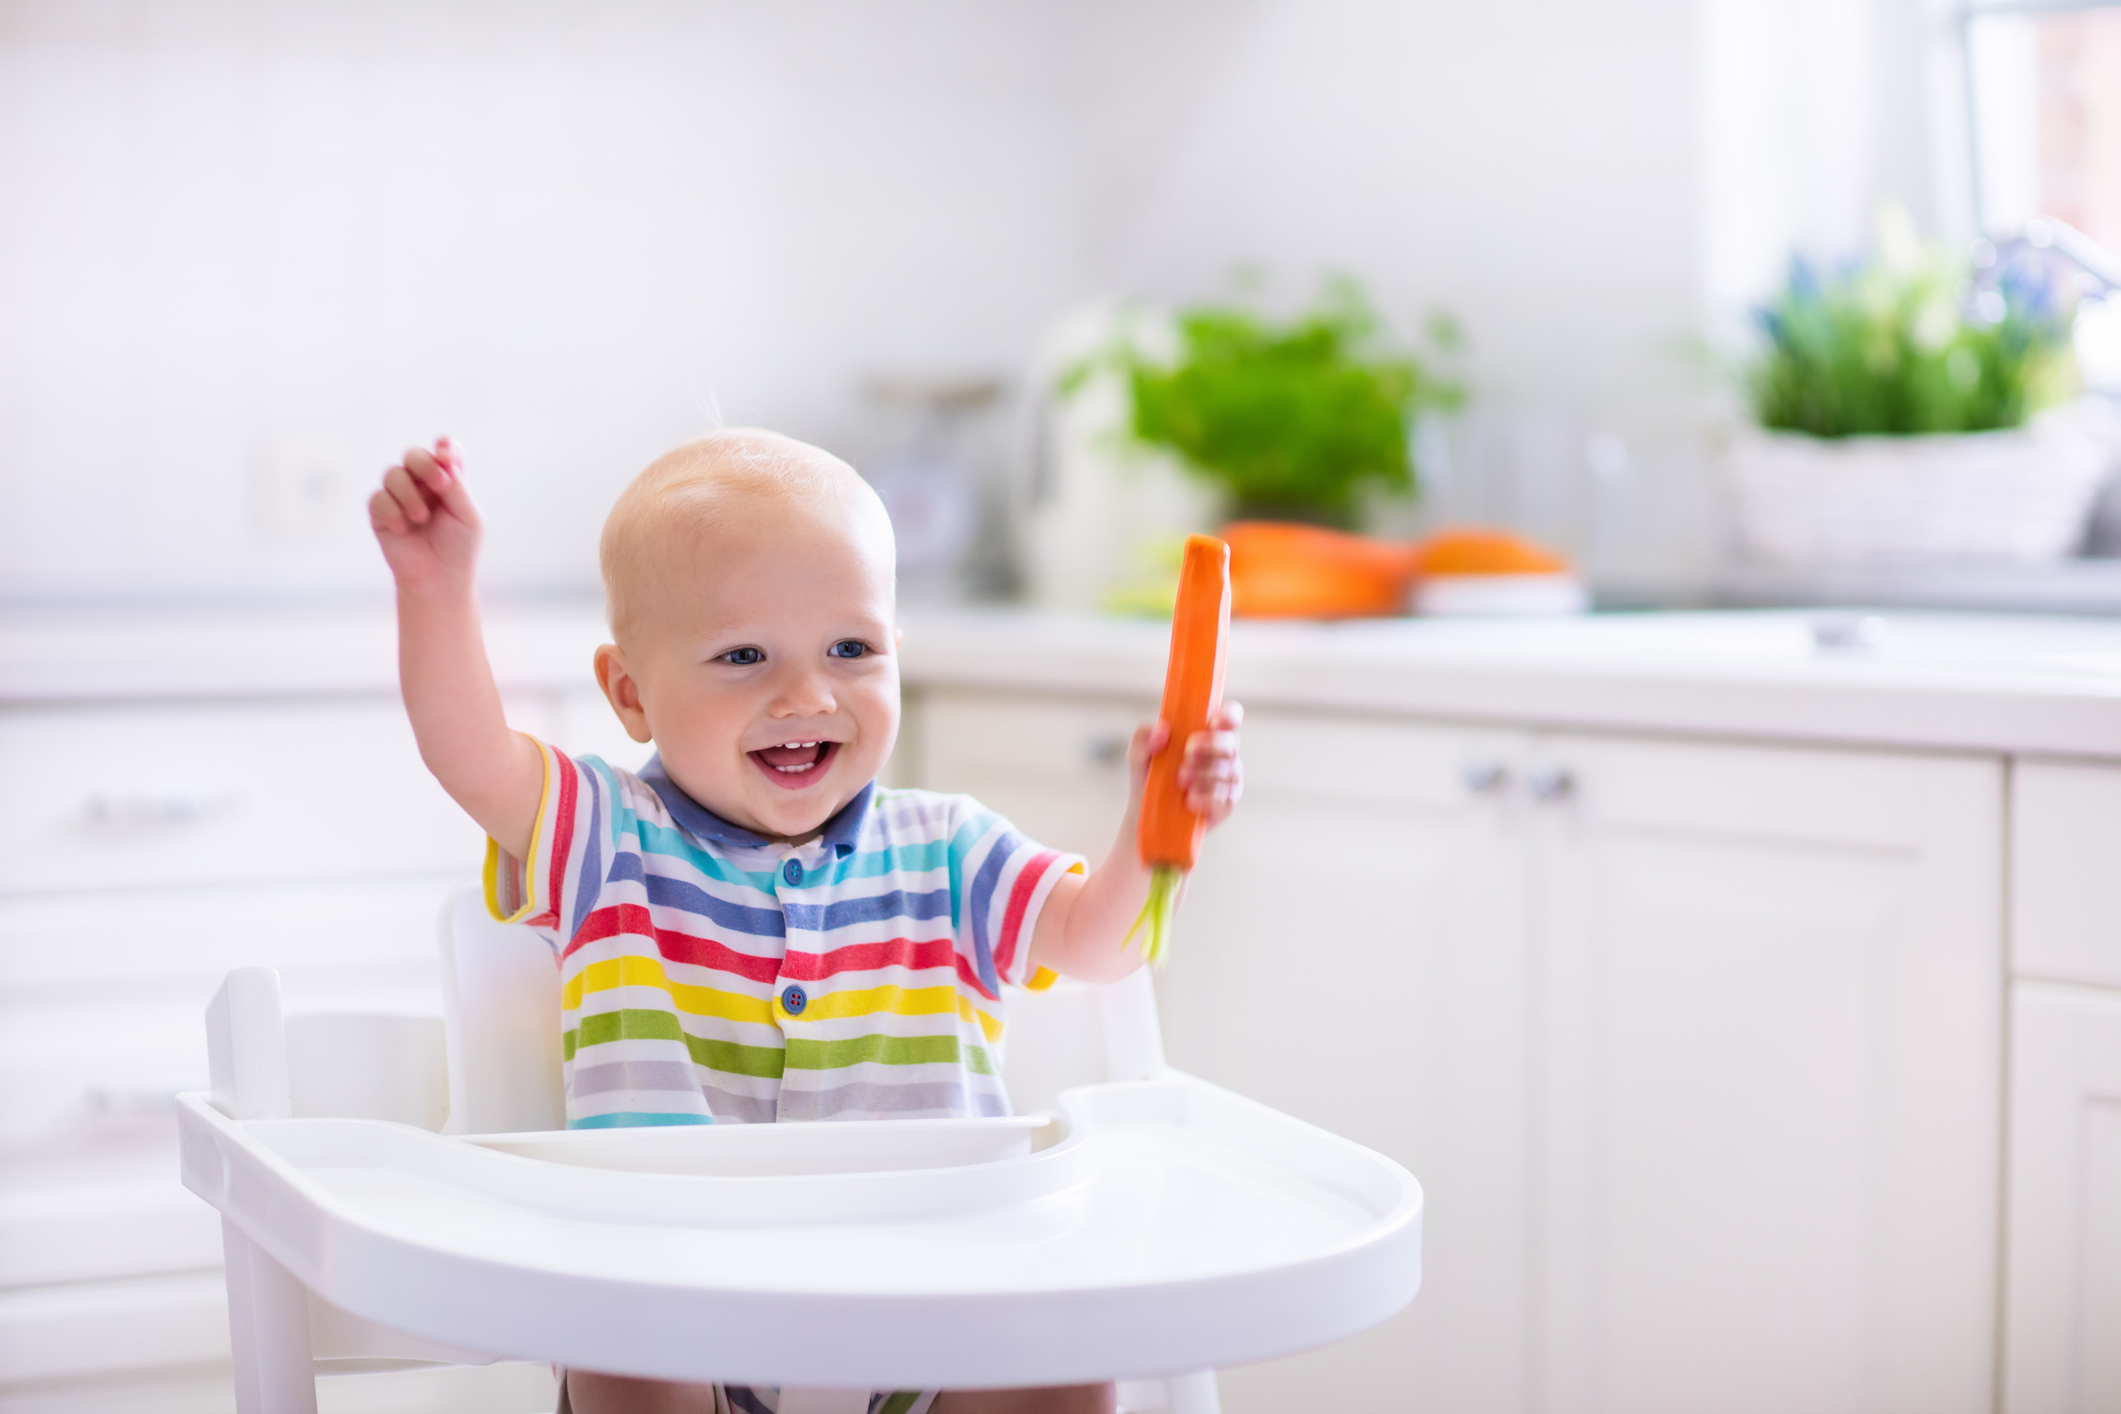 Happy baby sitting in high chair eating carrot in a white kitchen (Thinkstock/PA)